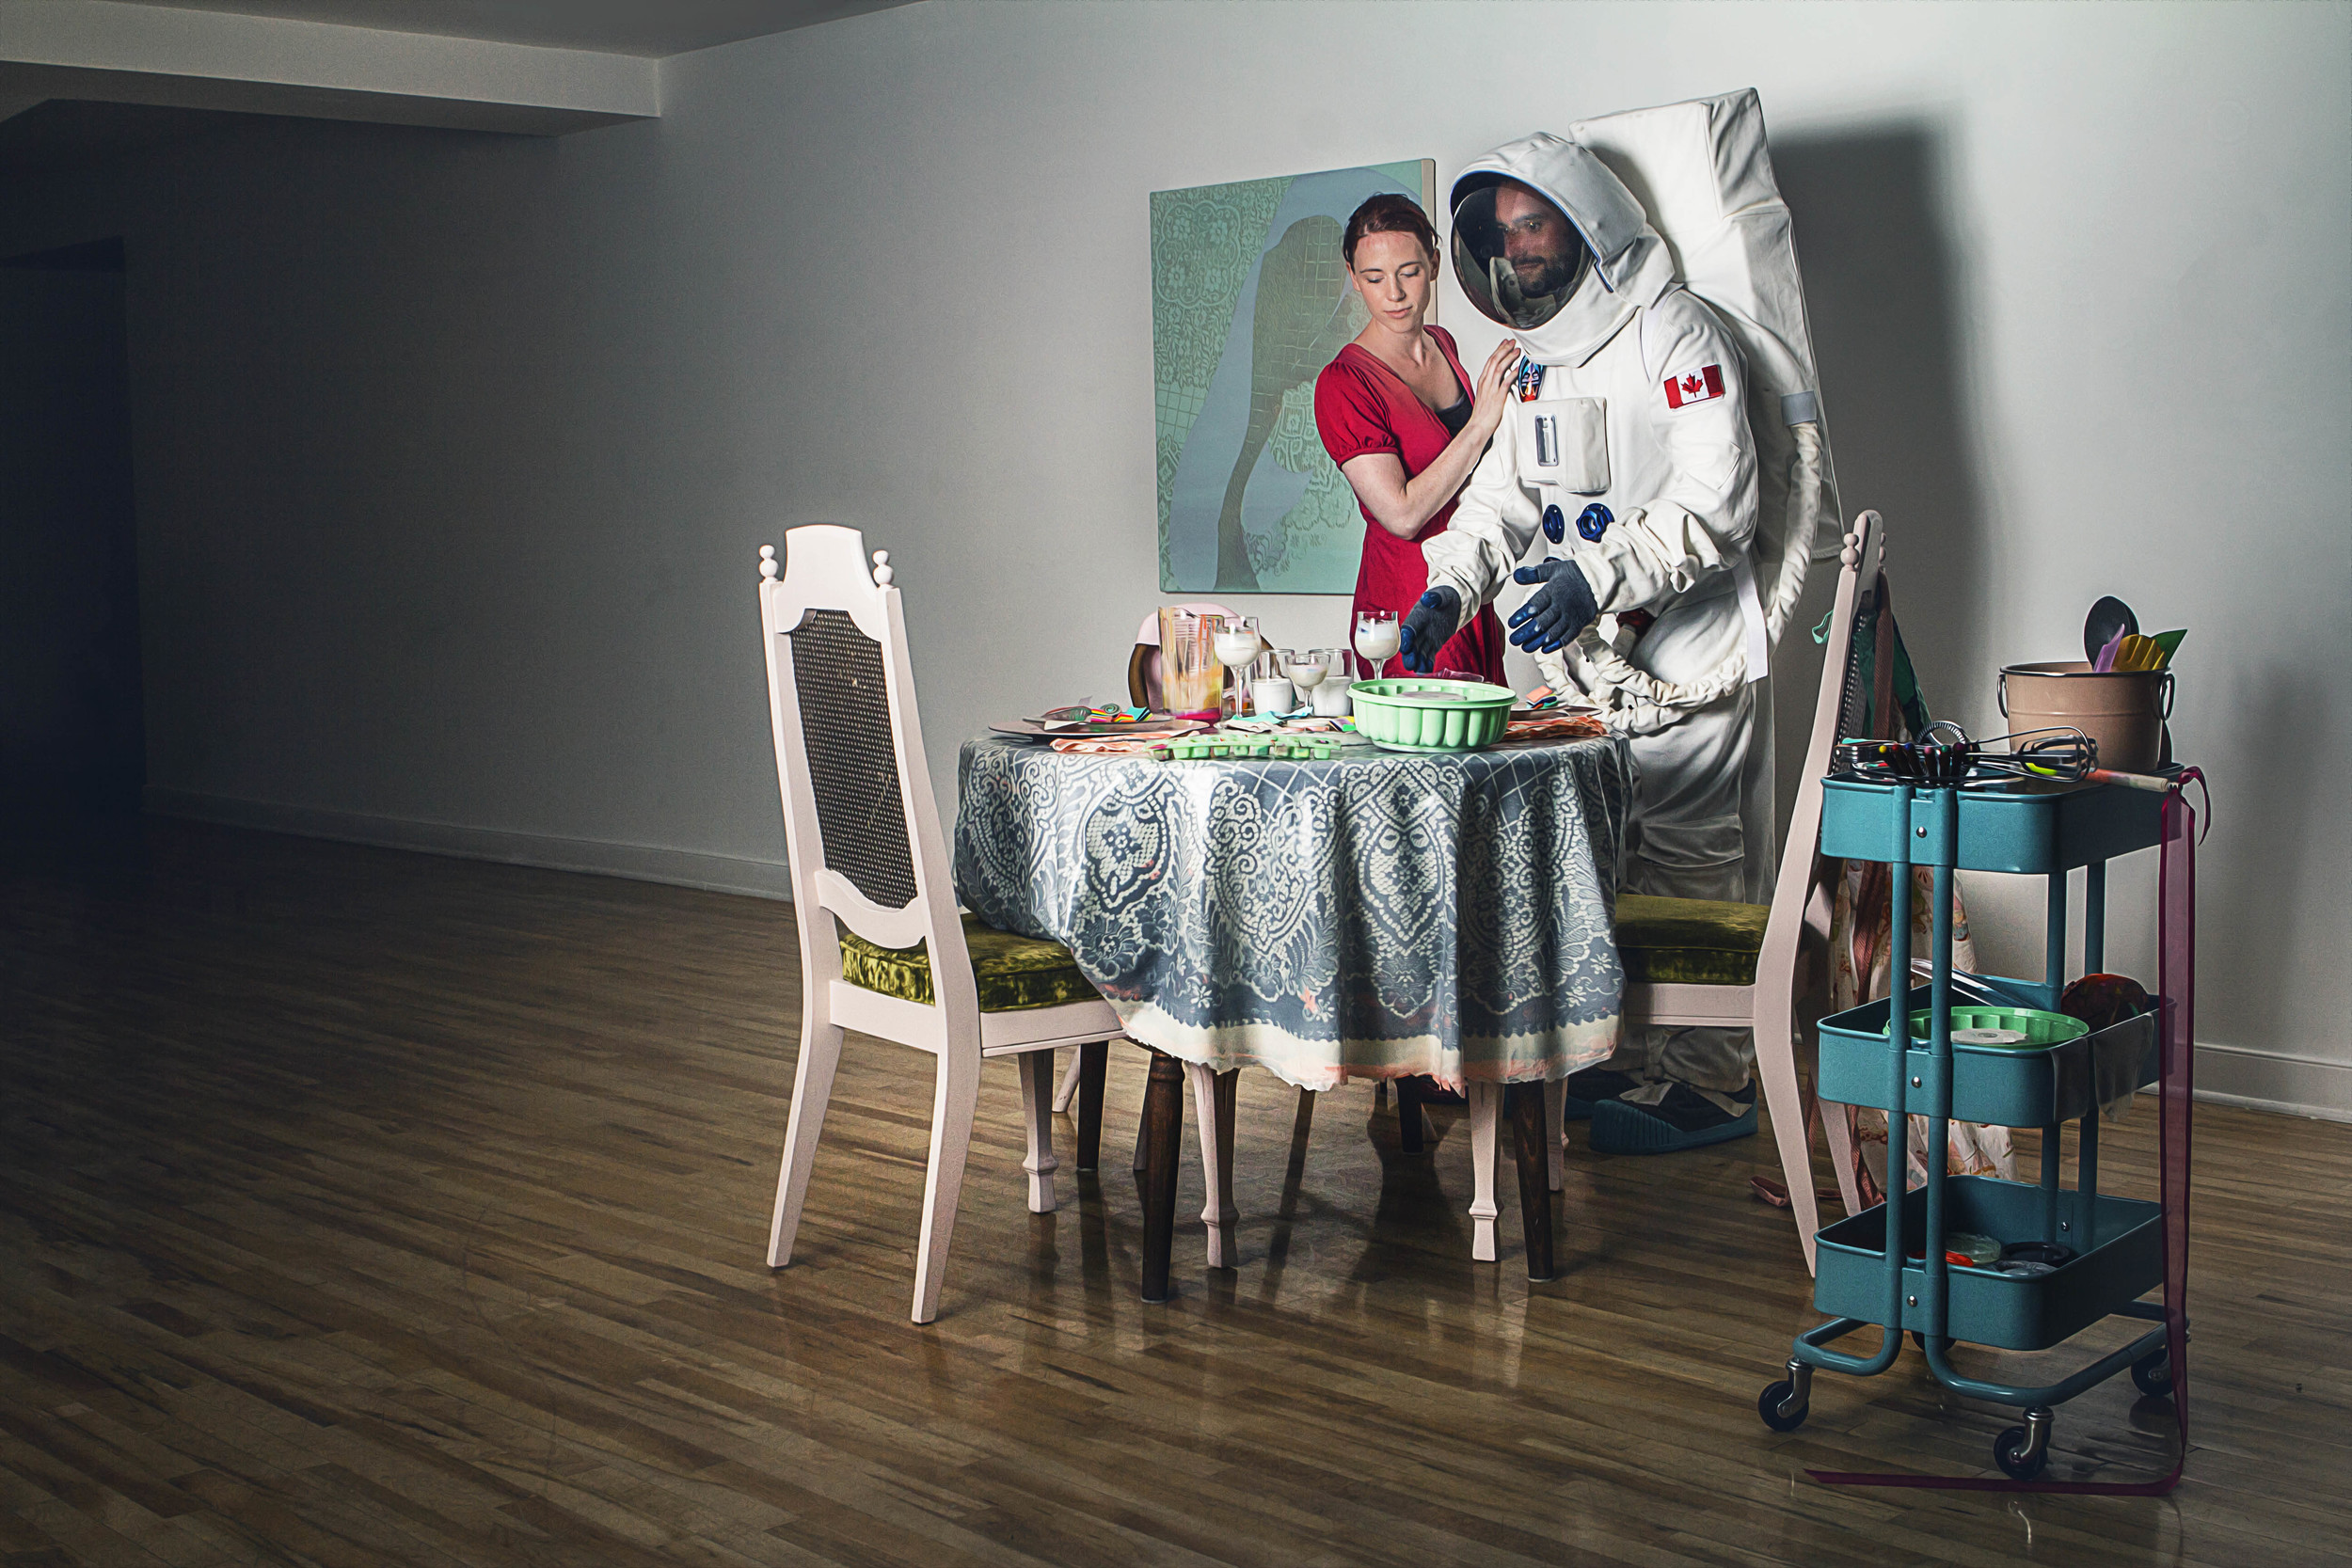 Conceptual photography  is meant to illustrates an idea. Often combining two elements that are not normally seen together, in this case, an astronaut helping his wife at home, representing the unseen life of our heros.